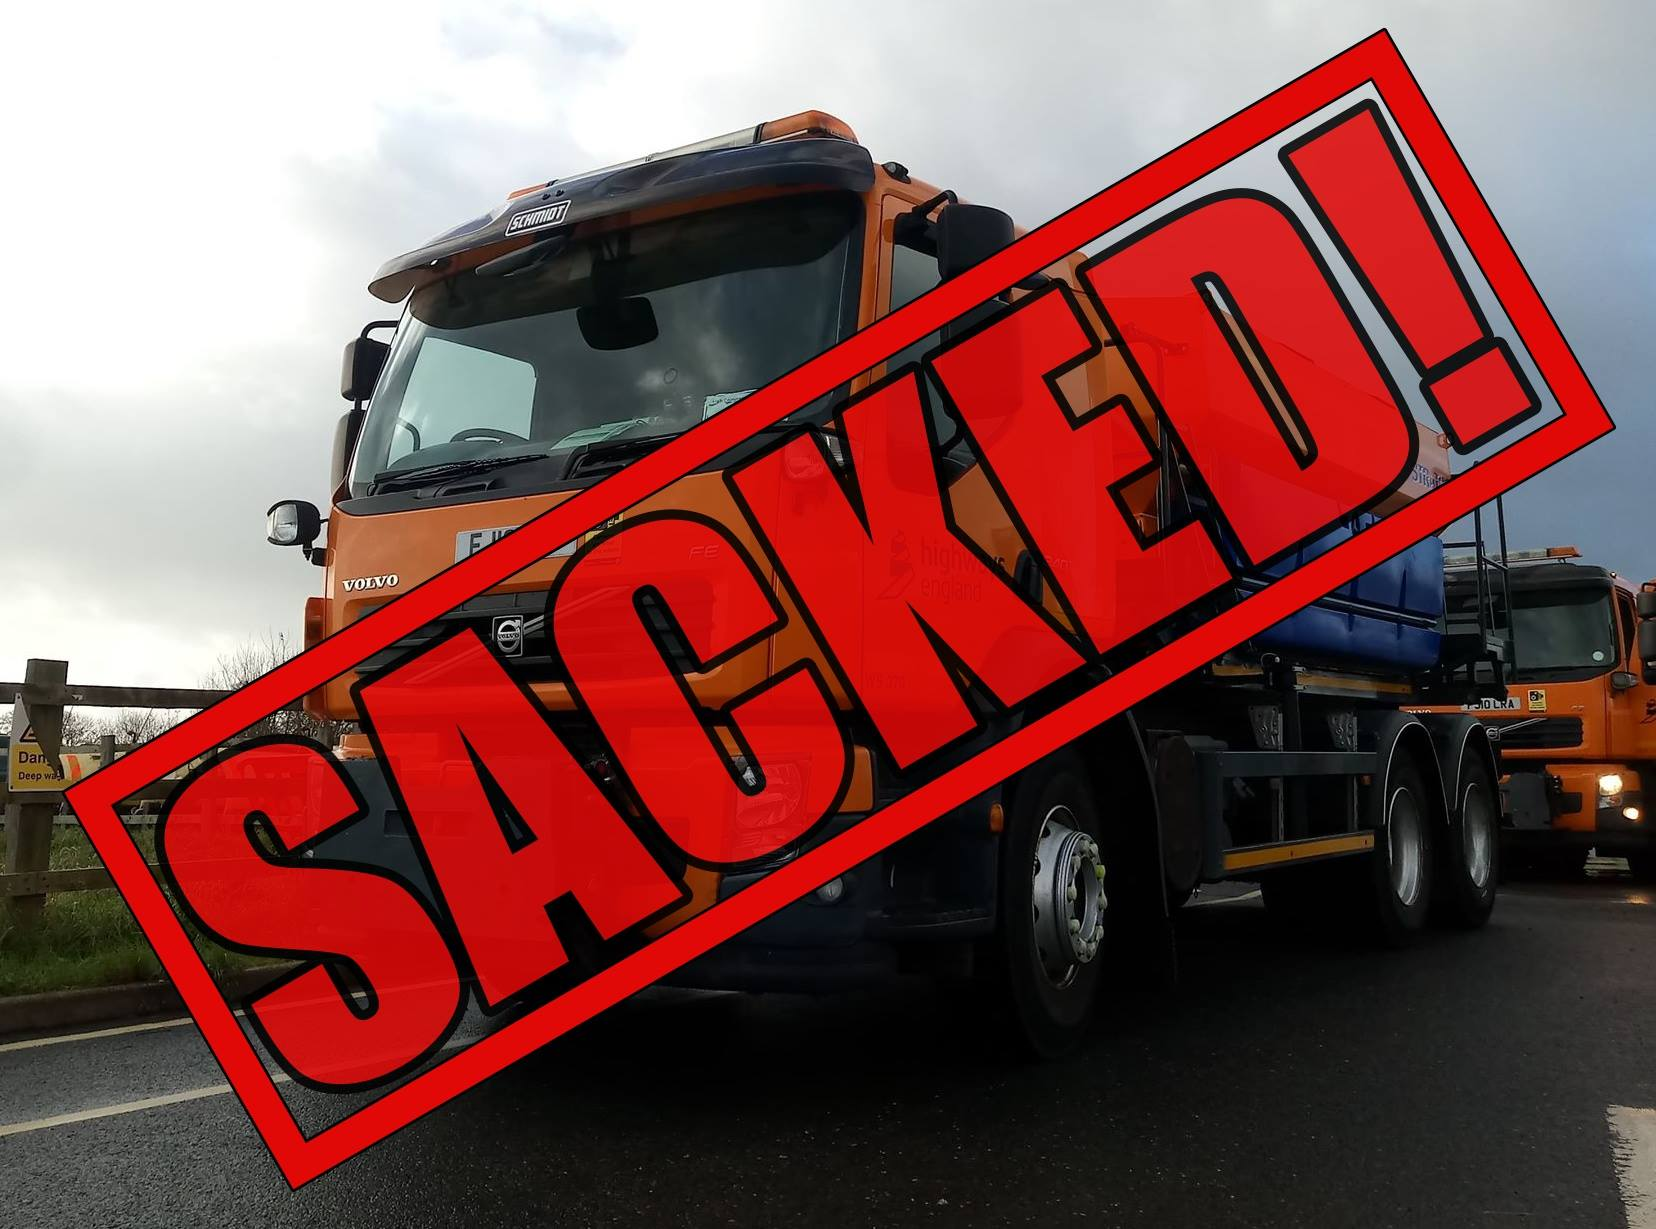 Gritter with sacked imposed on front